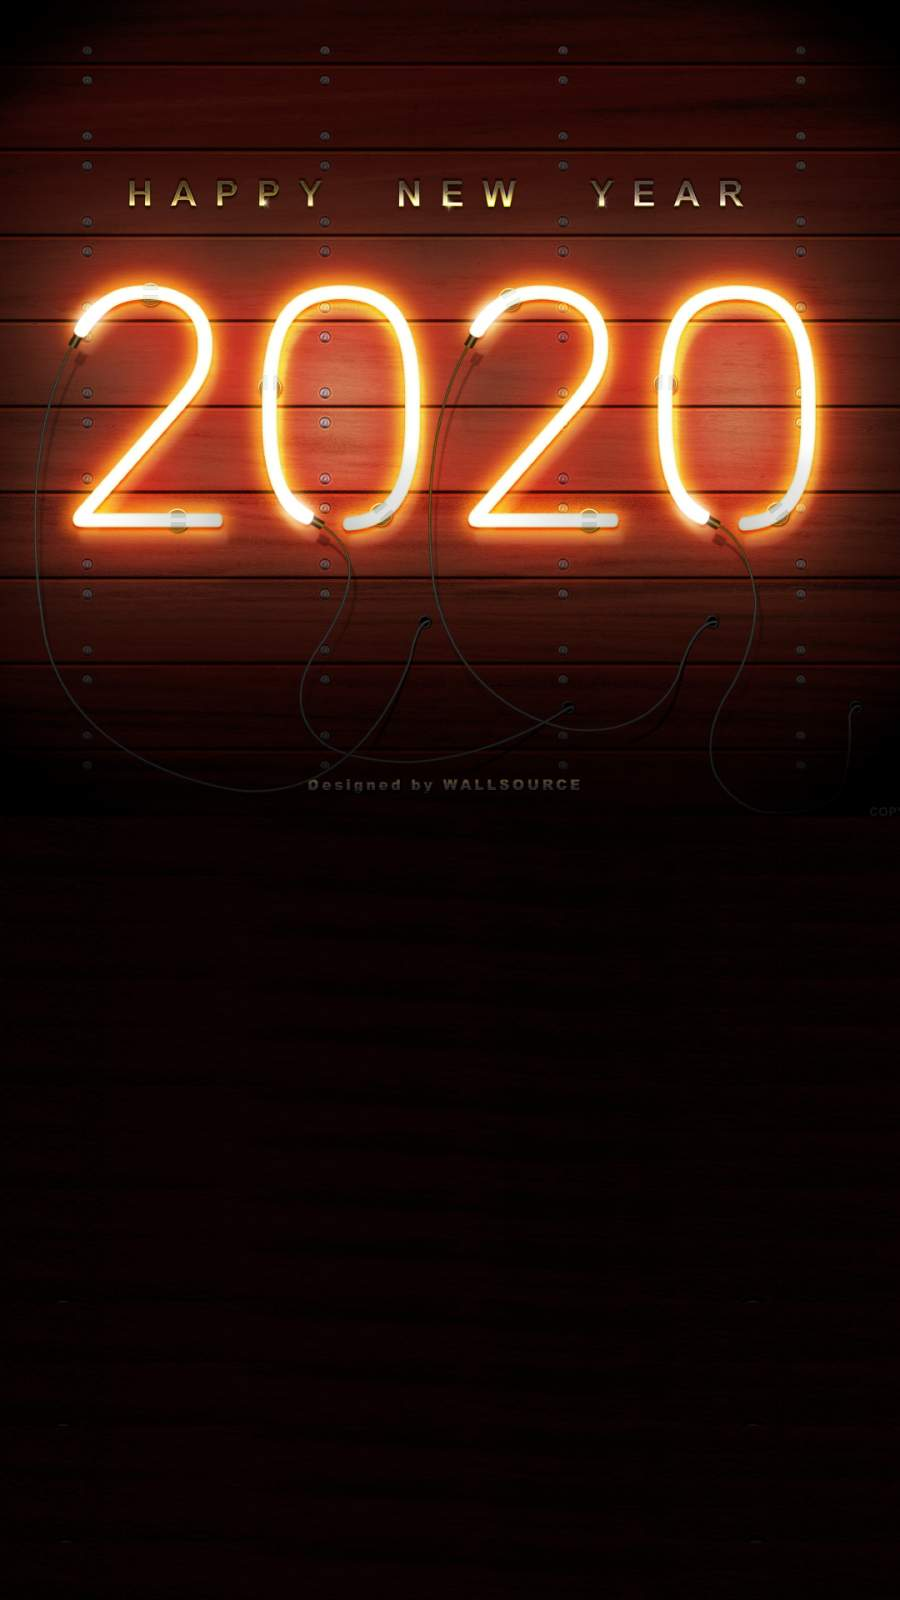 Happy New Year 2020 iPhone Wallpaper